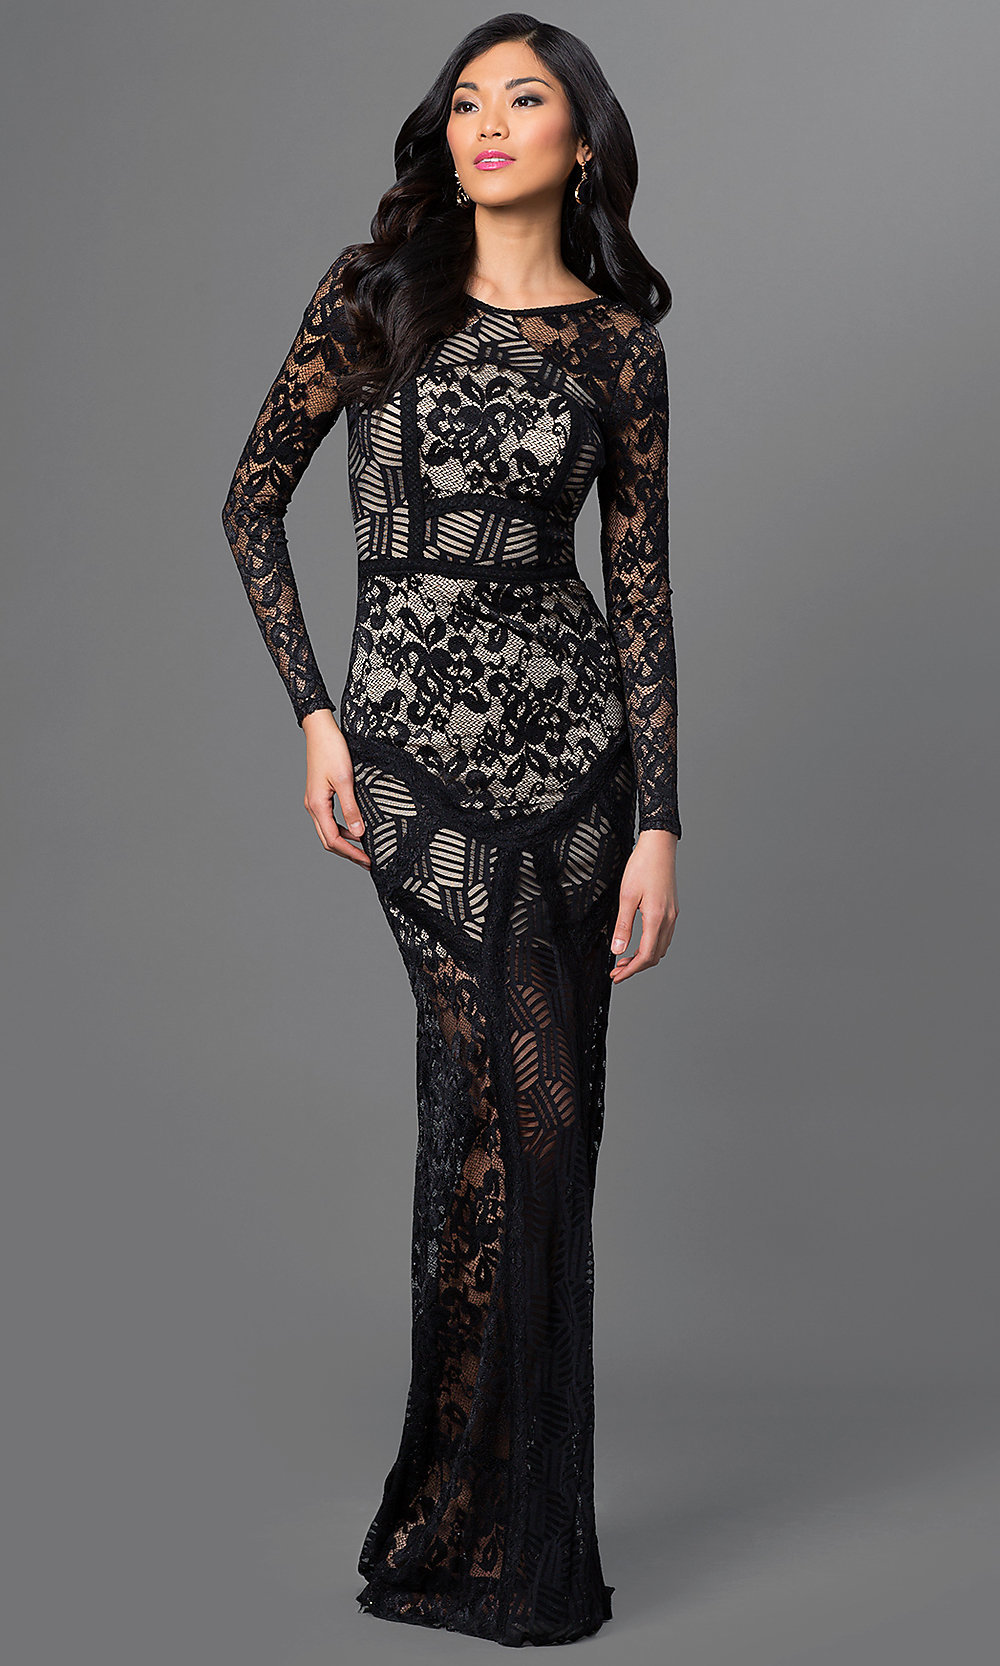 Lace Floor Length Long Sleeve Dress By Emerald Sundae